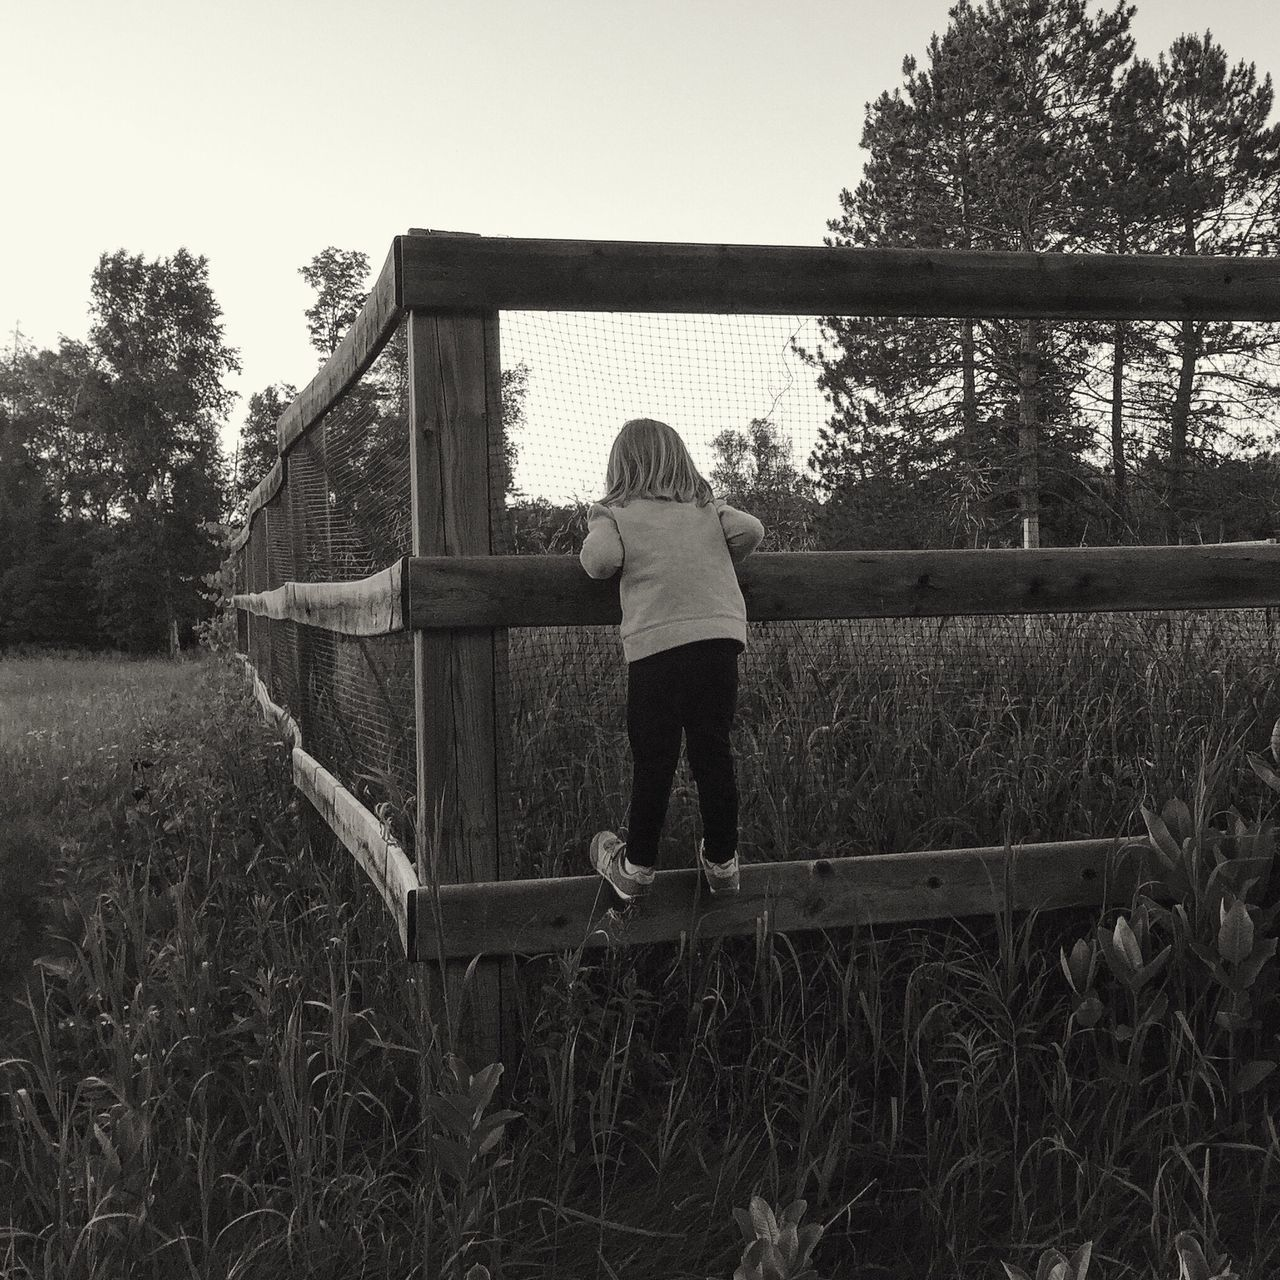 On the fence EyeEm Nature Lover Iphonography Puremichigan Nature On Your Doorstep Kids Youmobile Countryside Blackandwhite